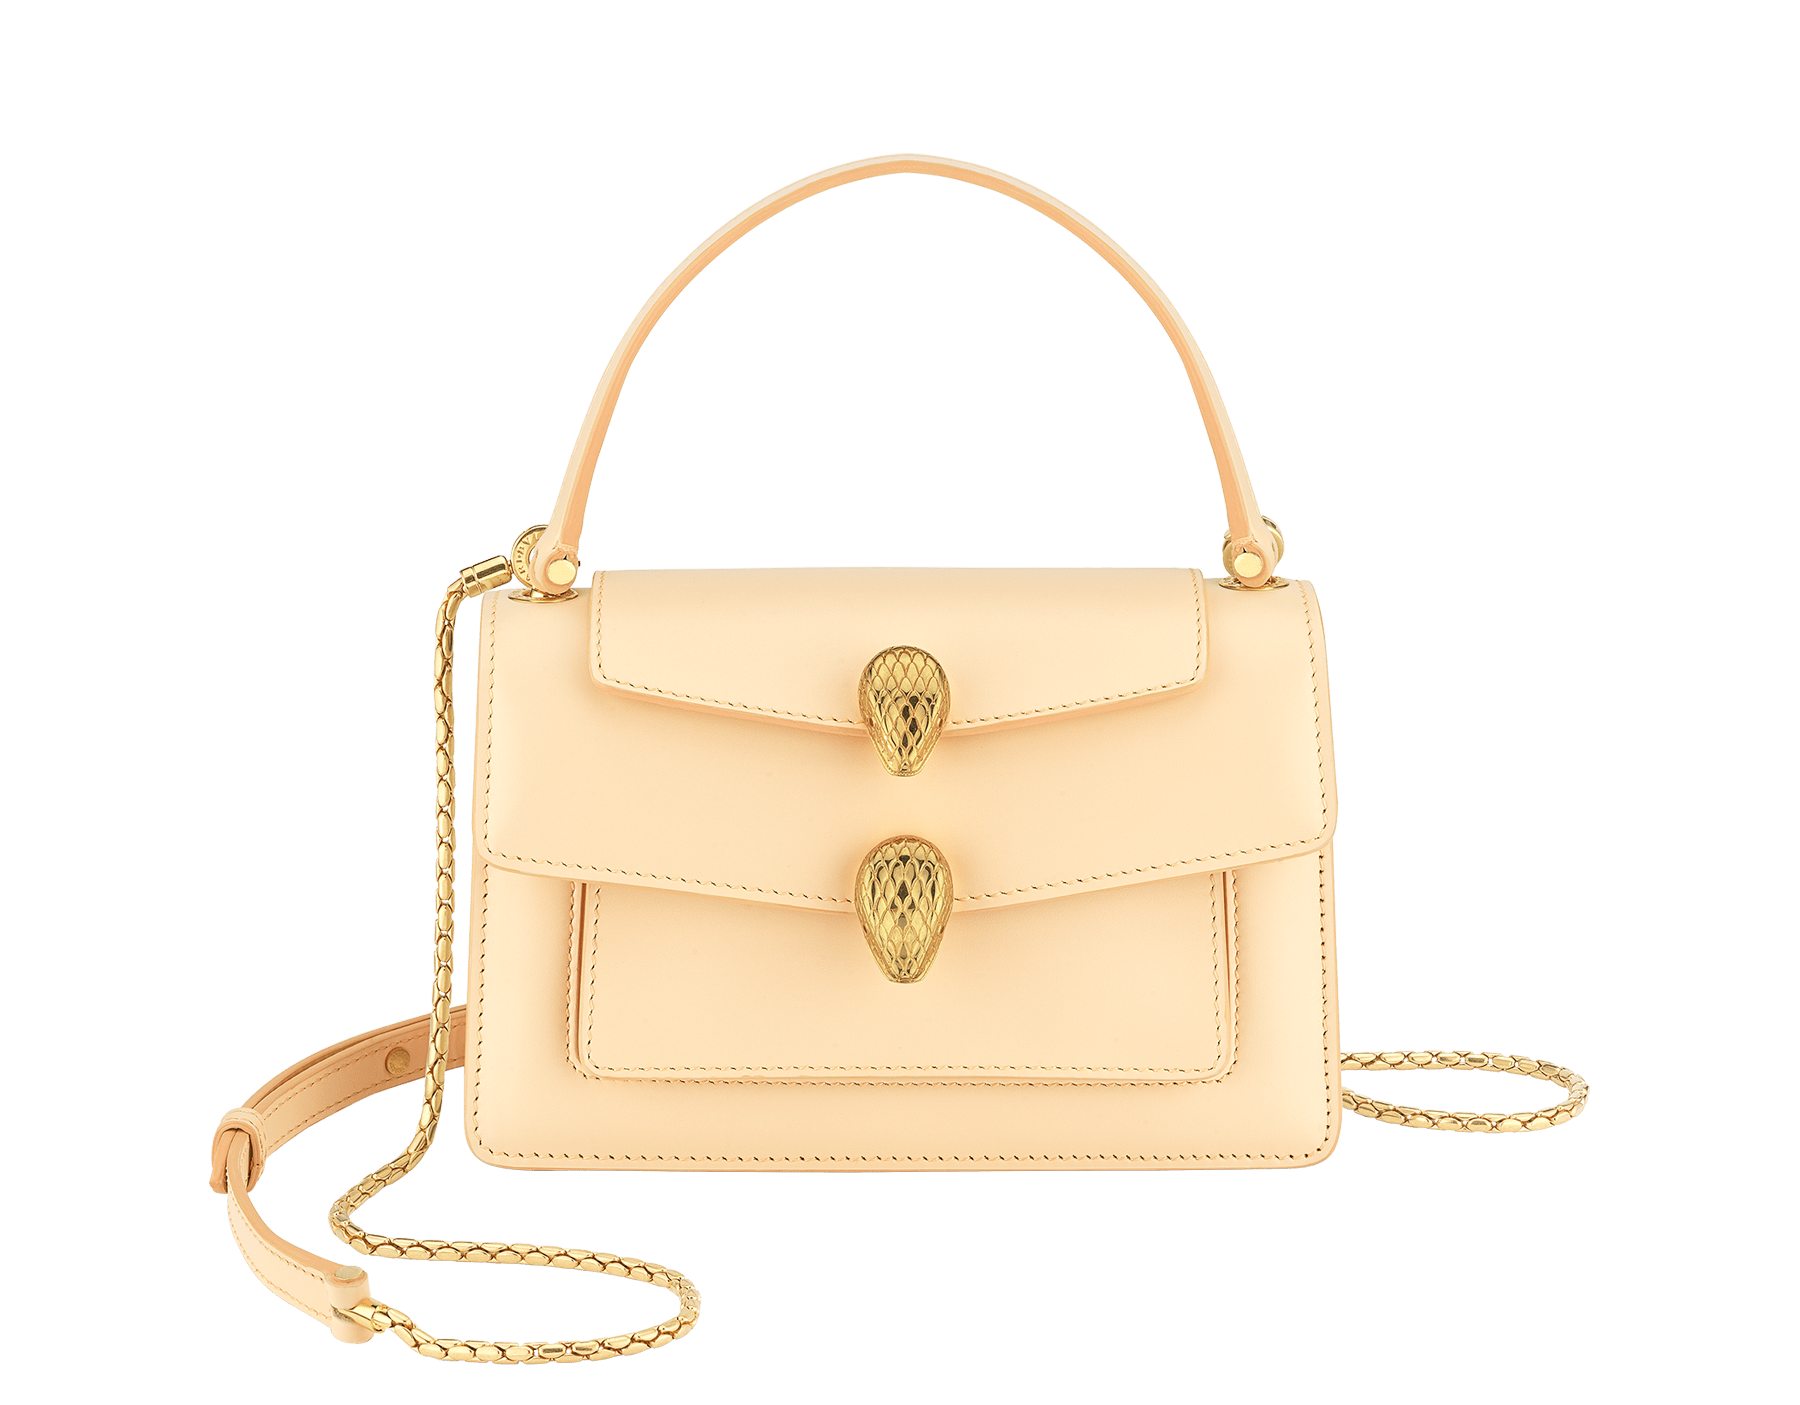 """Alexander Wang x Bvlgari"" belt bag in smooth peach calf leather. New double Serpenti head closure in antique gold-plated brass with tempting red enamel eyes. SFW-001-1029S image 1"